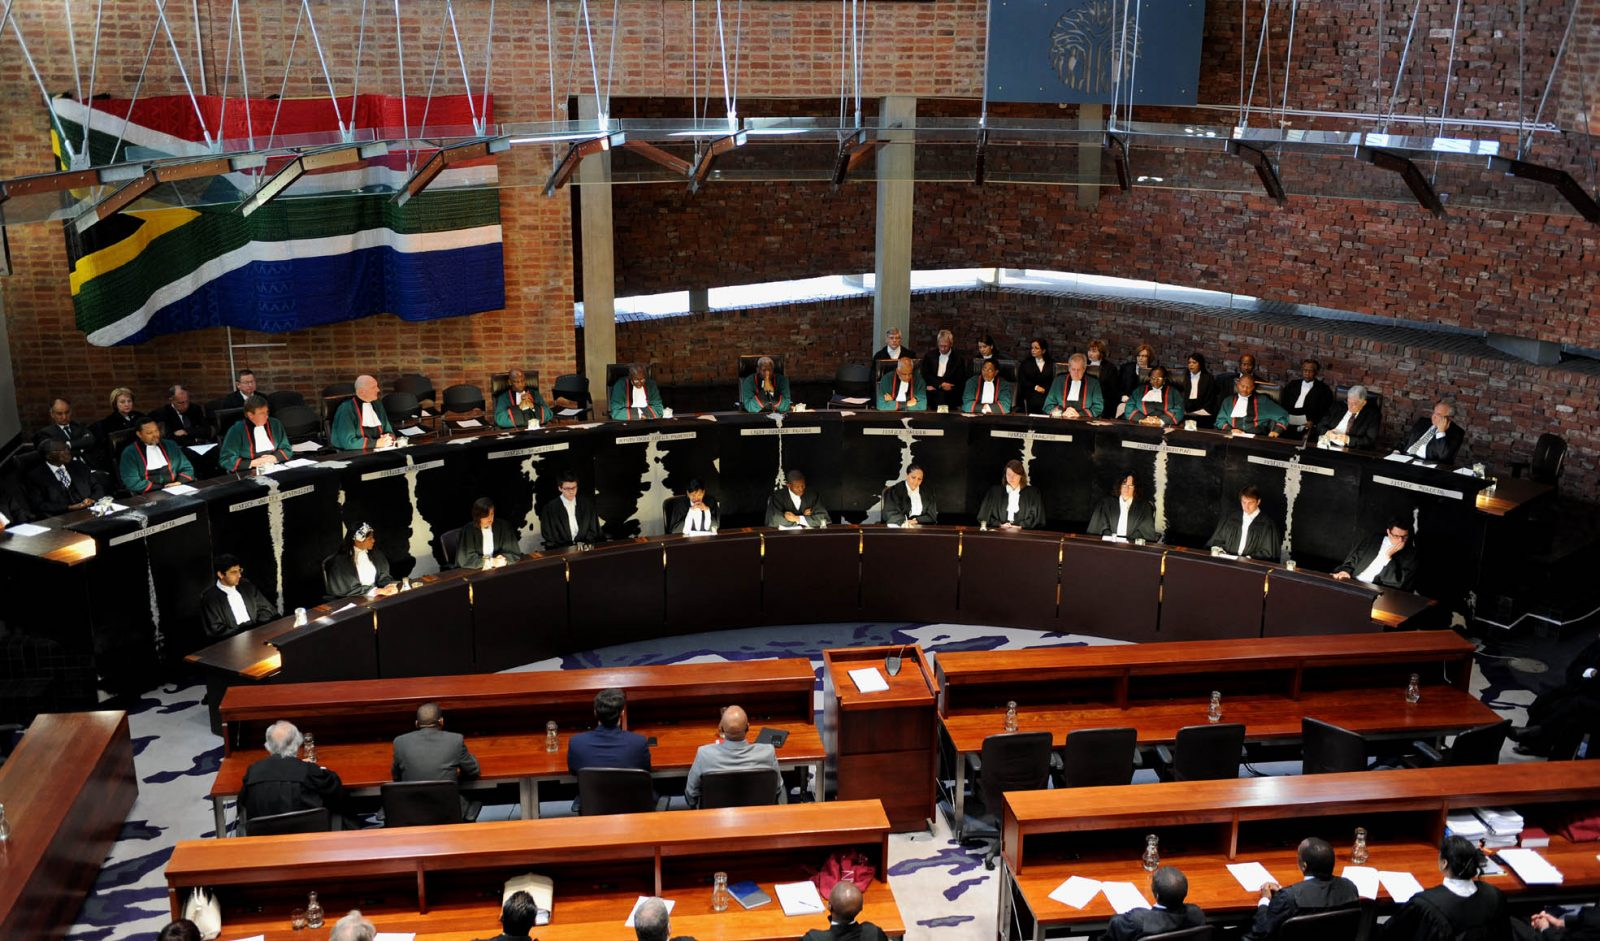 South Africa's apex court rules spanking children as unconstitutional